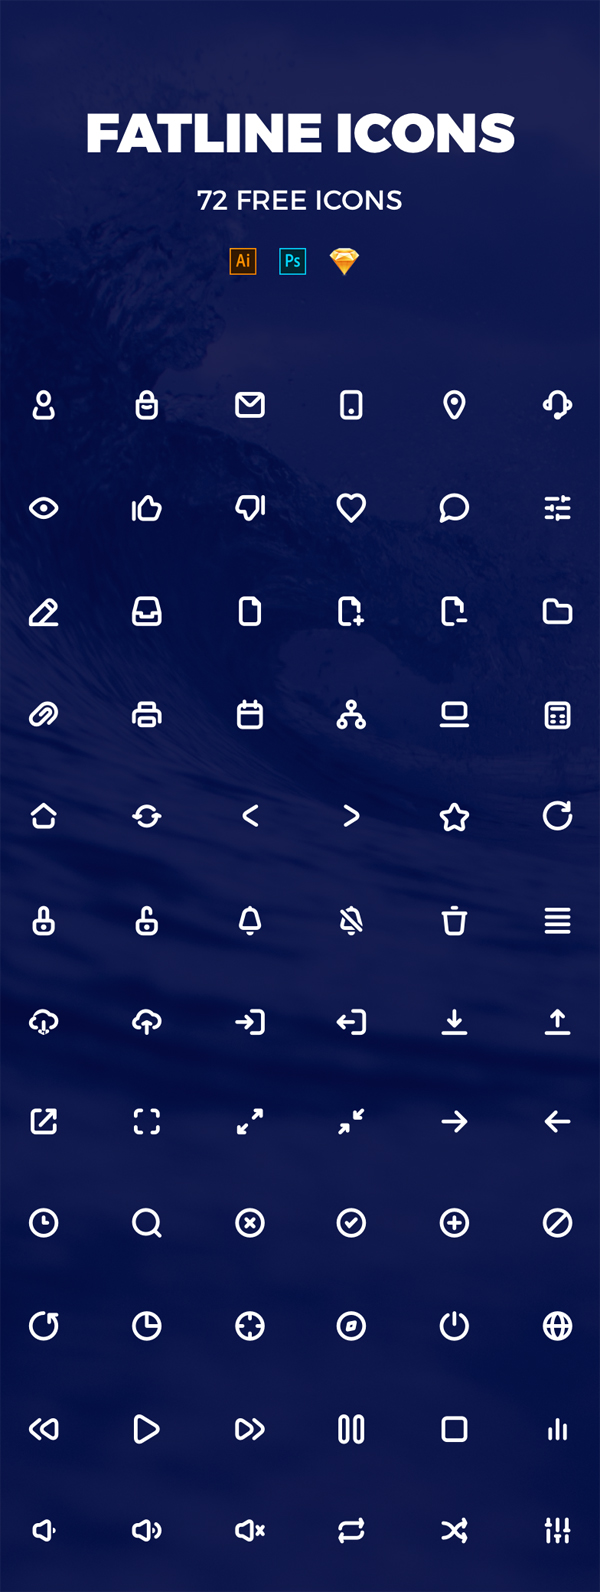 Pixel Perfect Fatline Free Icons (72 Icons)